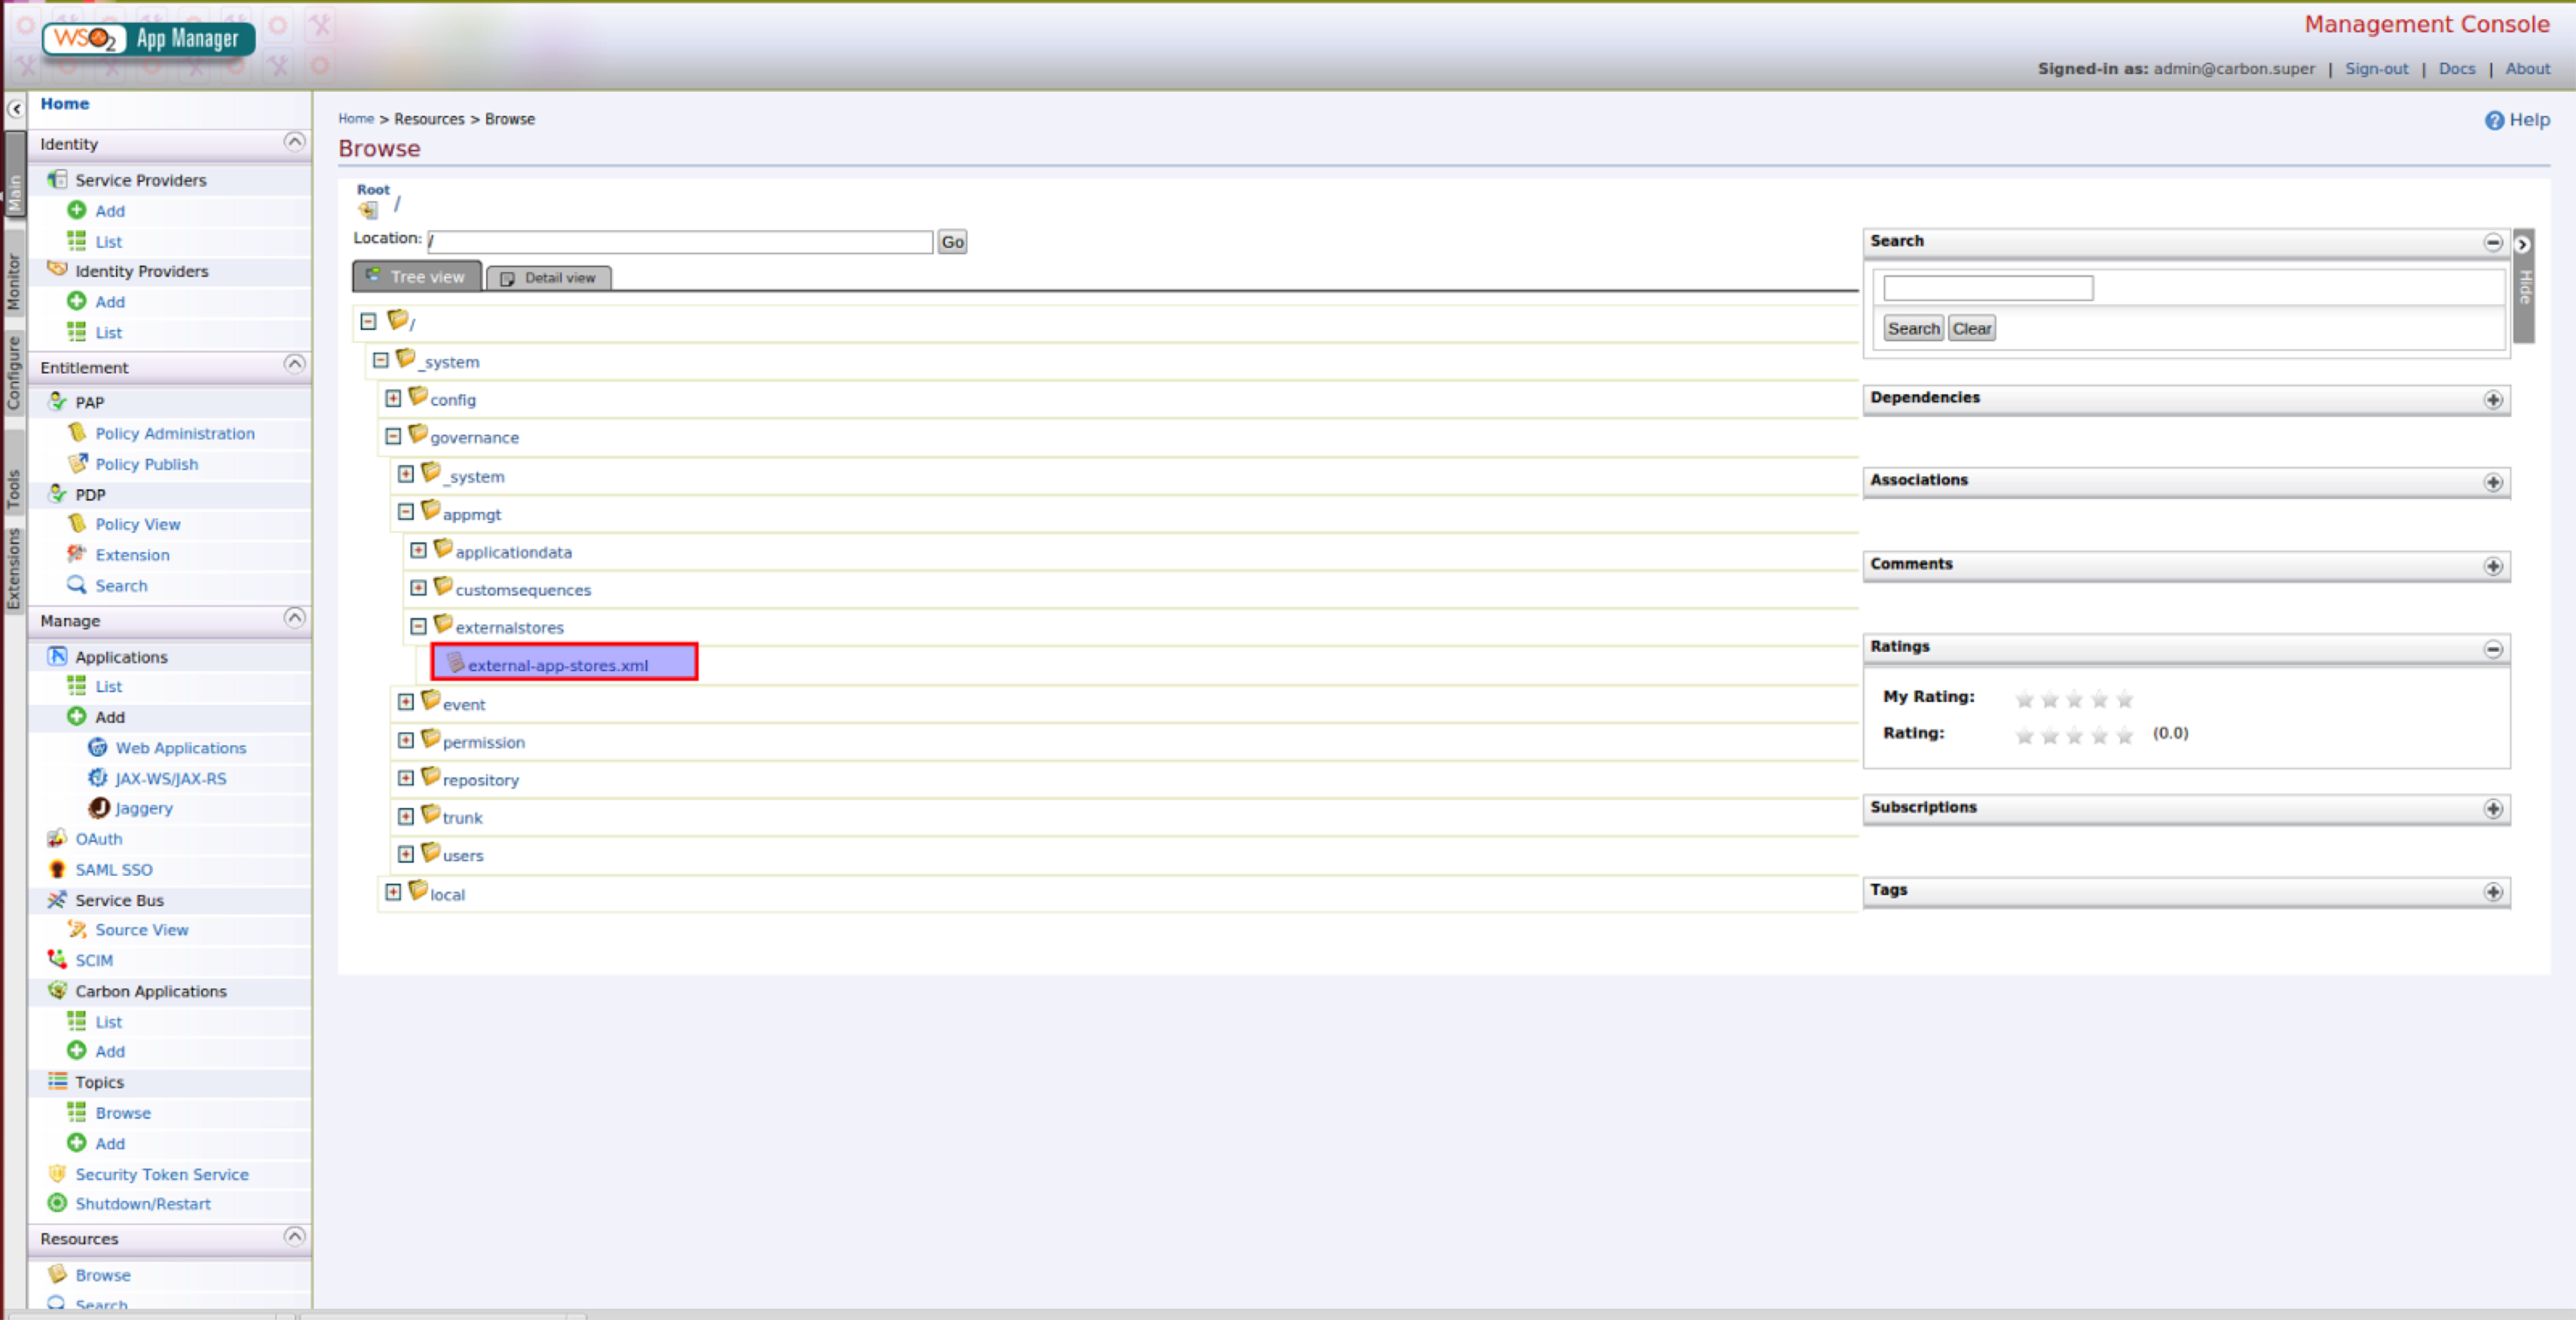 Publishing Web Apps to Multiple Tenant Stores - App Manager